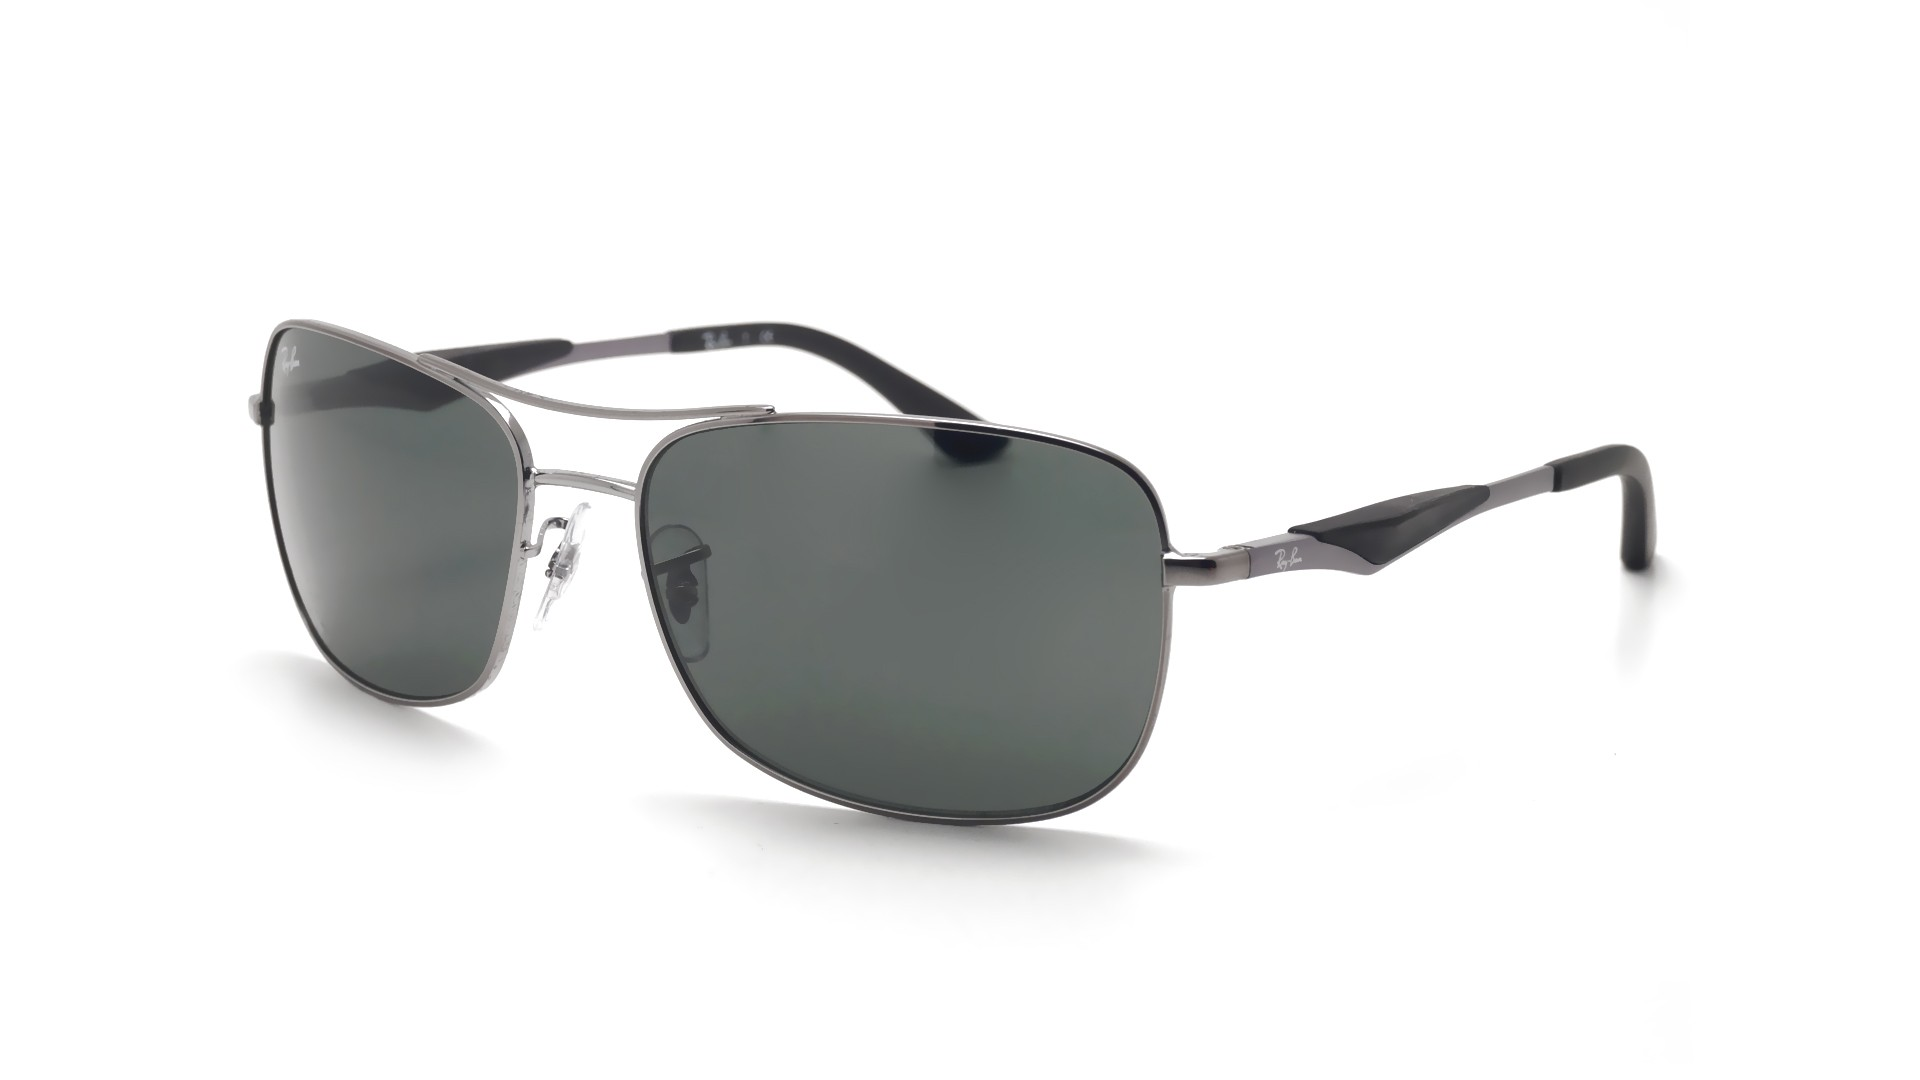 d08ce78fdd Sunglasses Ray-Ban RB3515 004 71 61-17 Silver Large